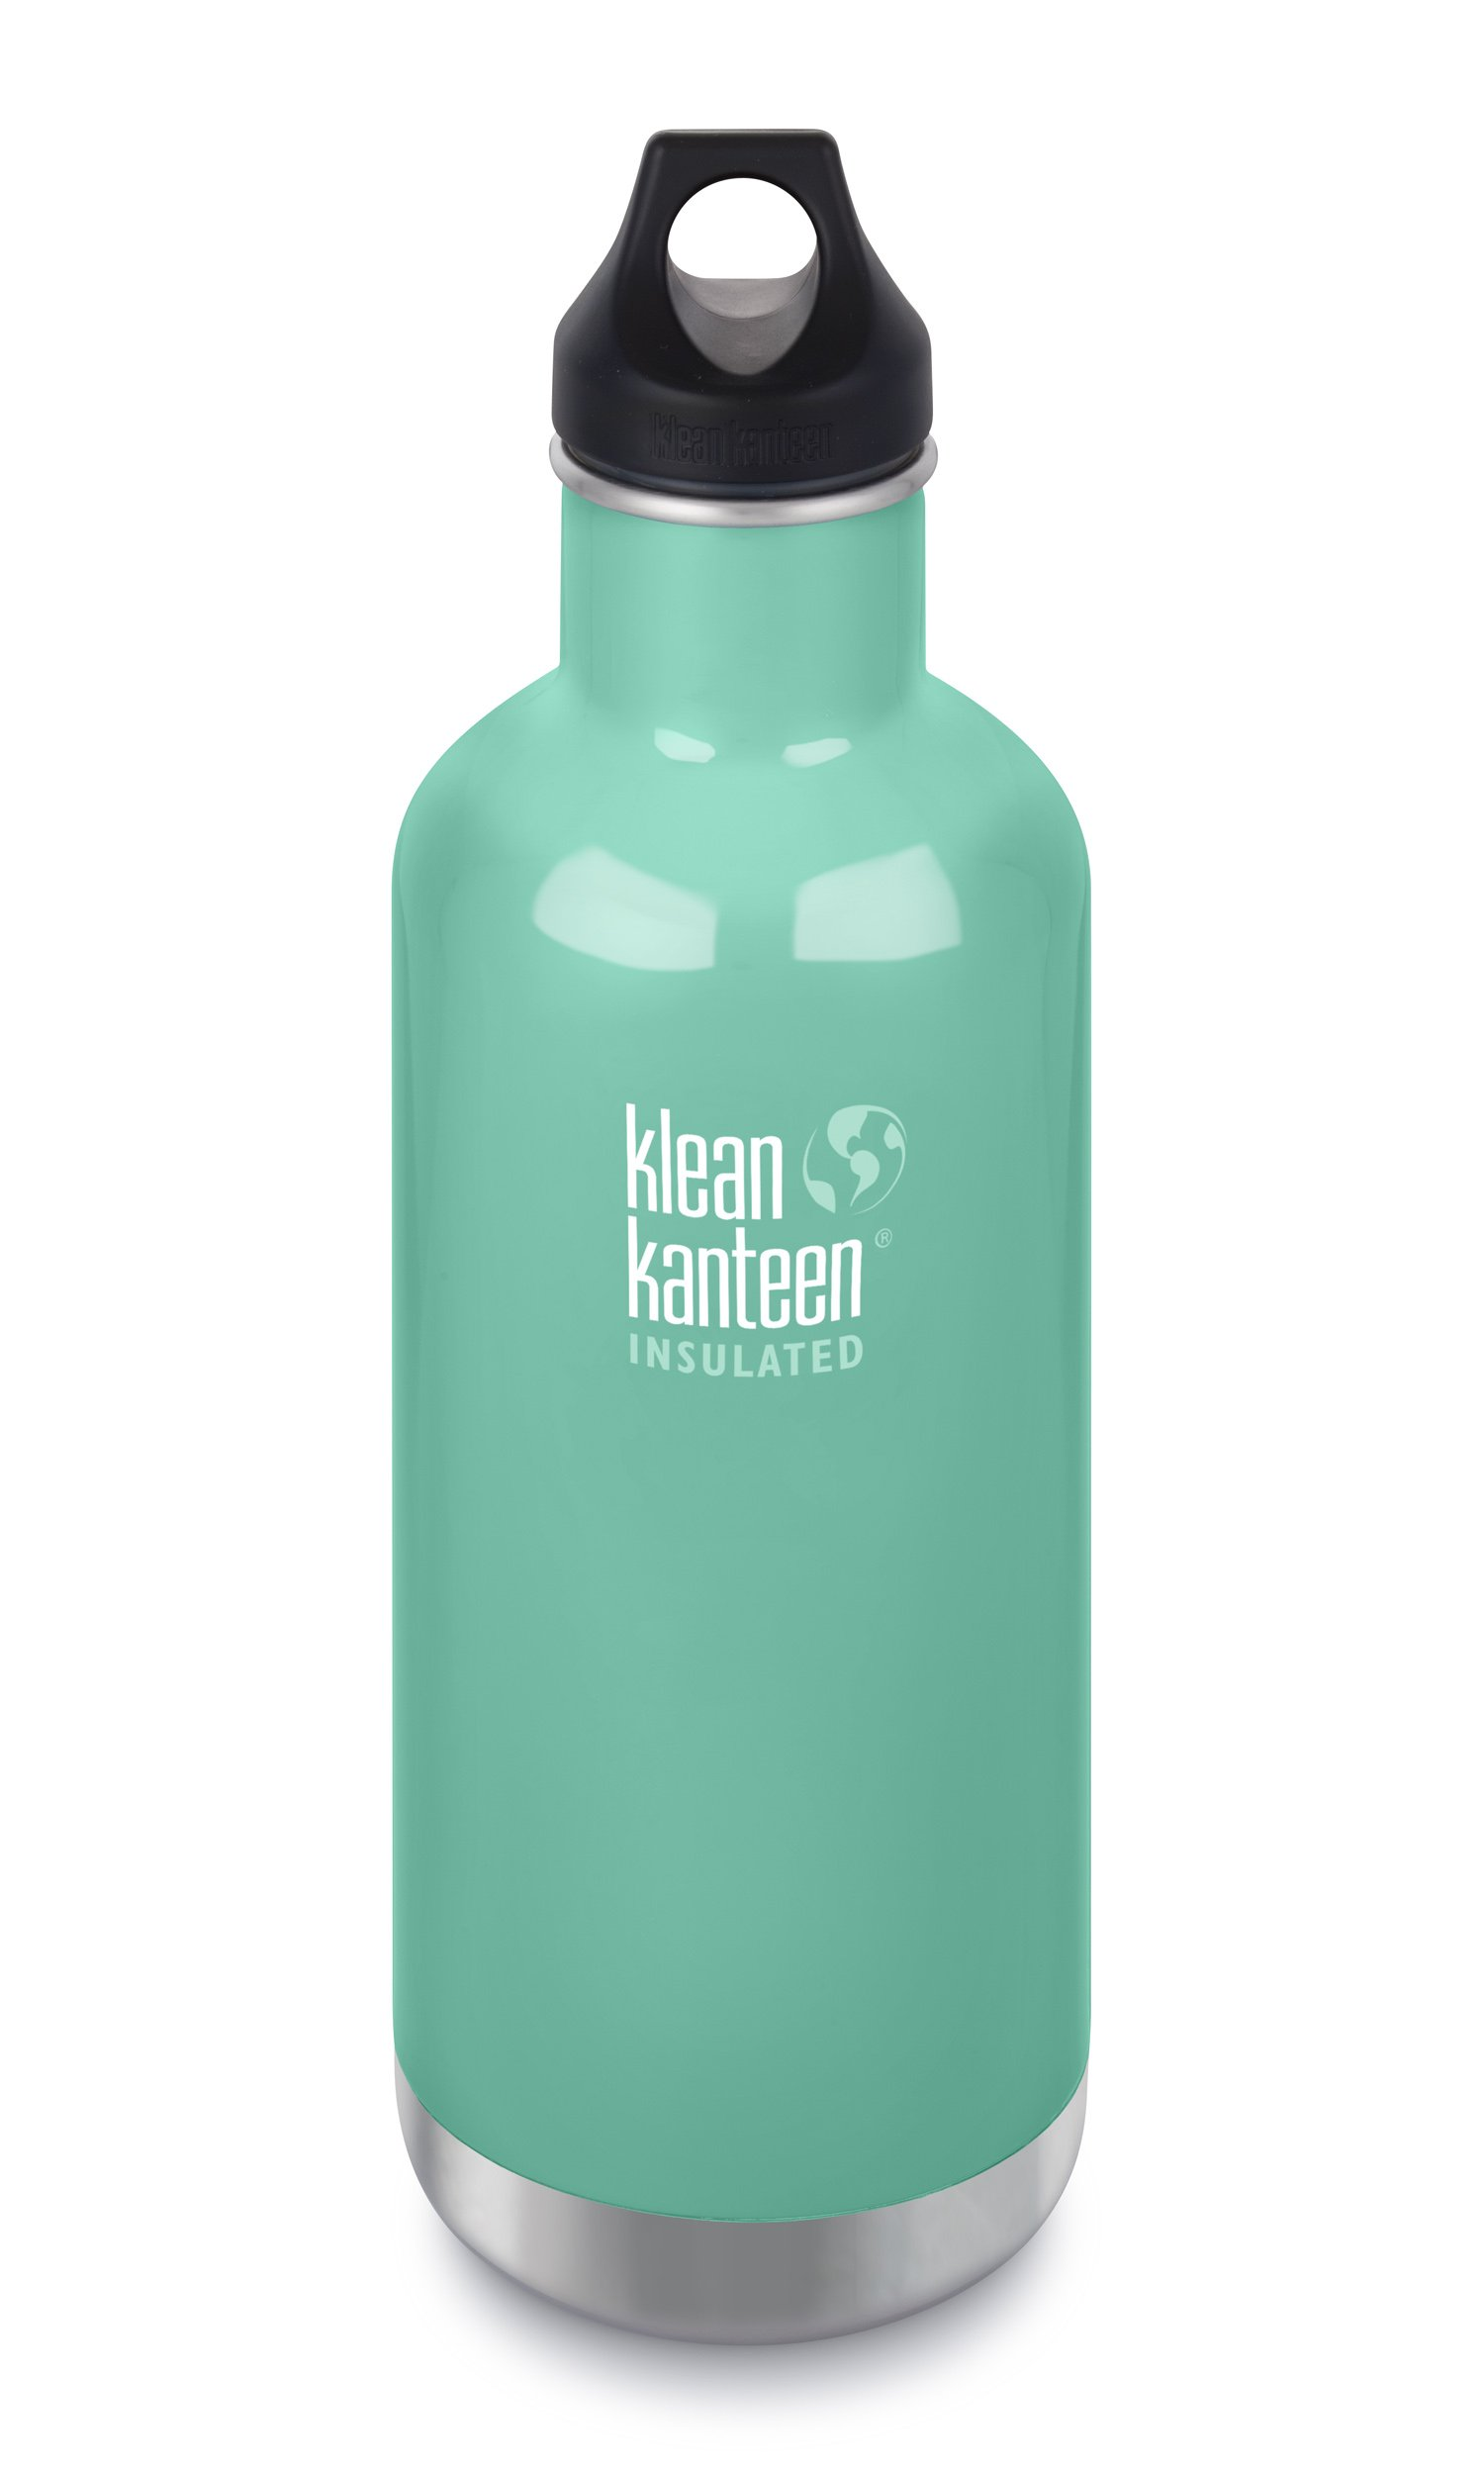 Klean Kanteen Classic Insulated Stainless Steel Water Bottle with Klean Coat and Leak Proof Loop Cap - 32oz - Sea Crest